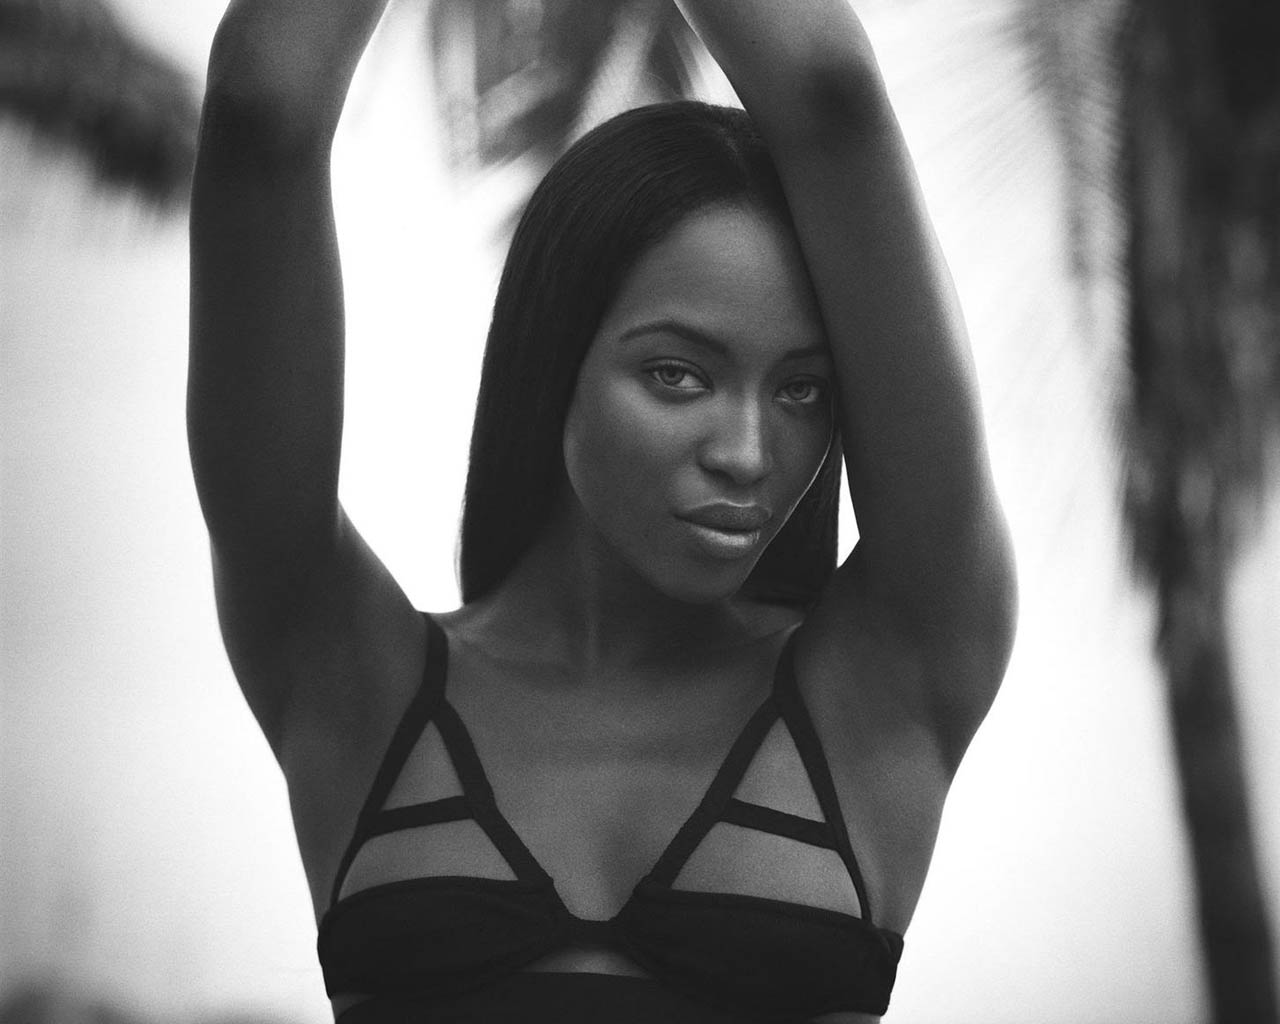 naomi_campbell_wallpaper_8-normal5.4